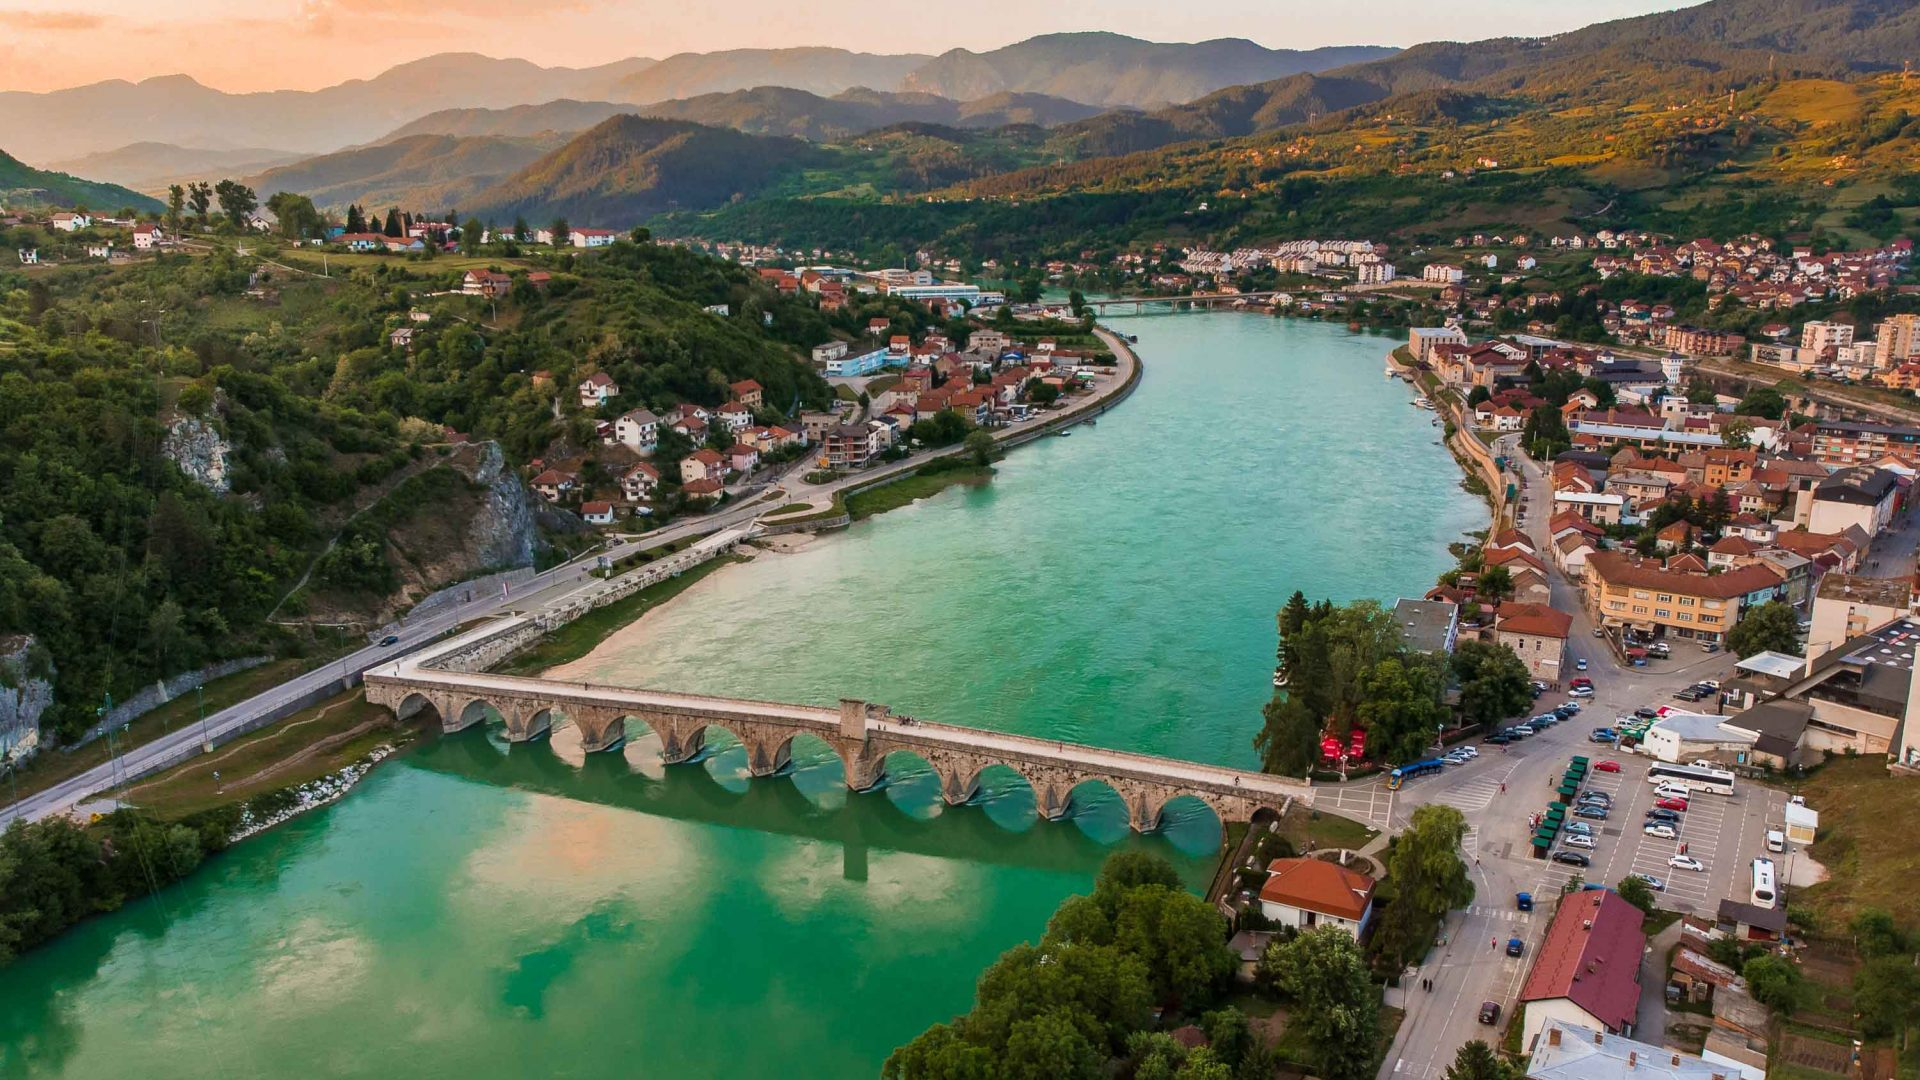 The town of Višegrad, a town on the Drina and the Rzav rivers in Bosnia and Herzegovina.